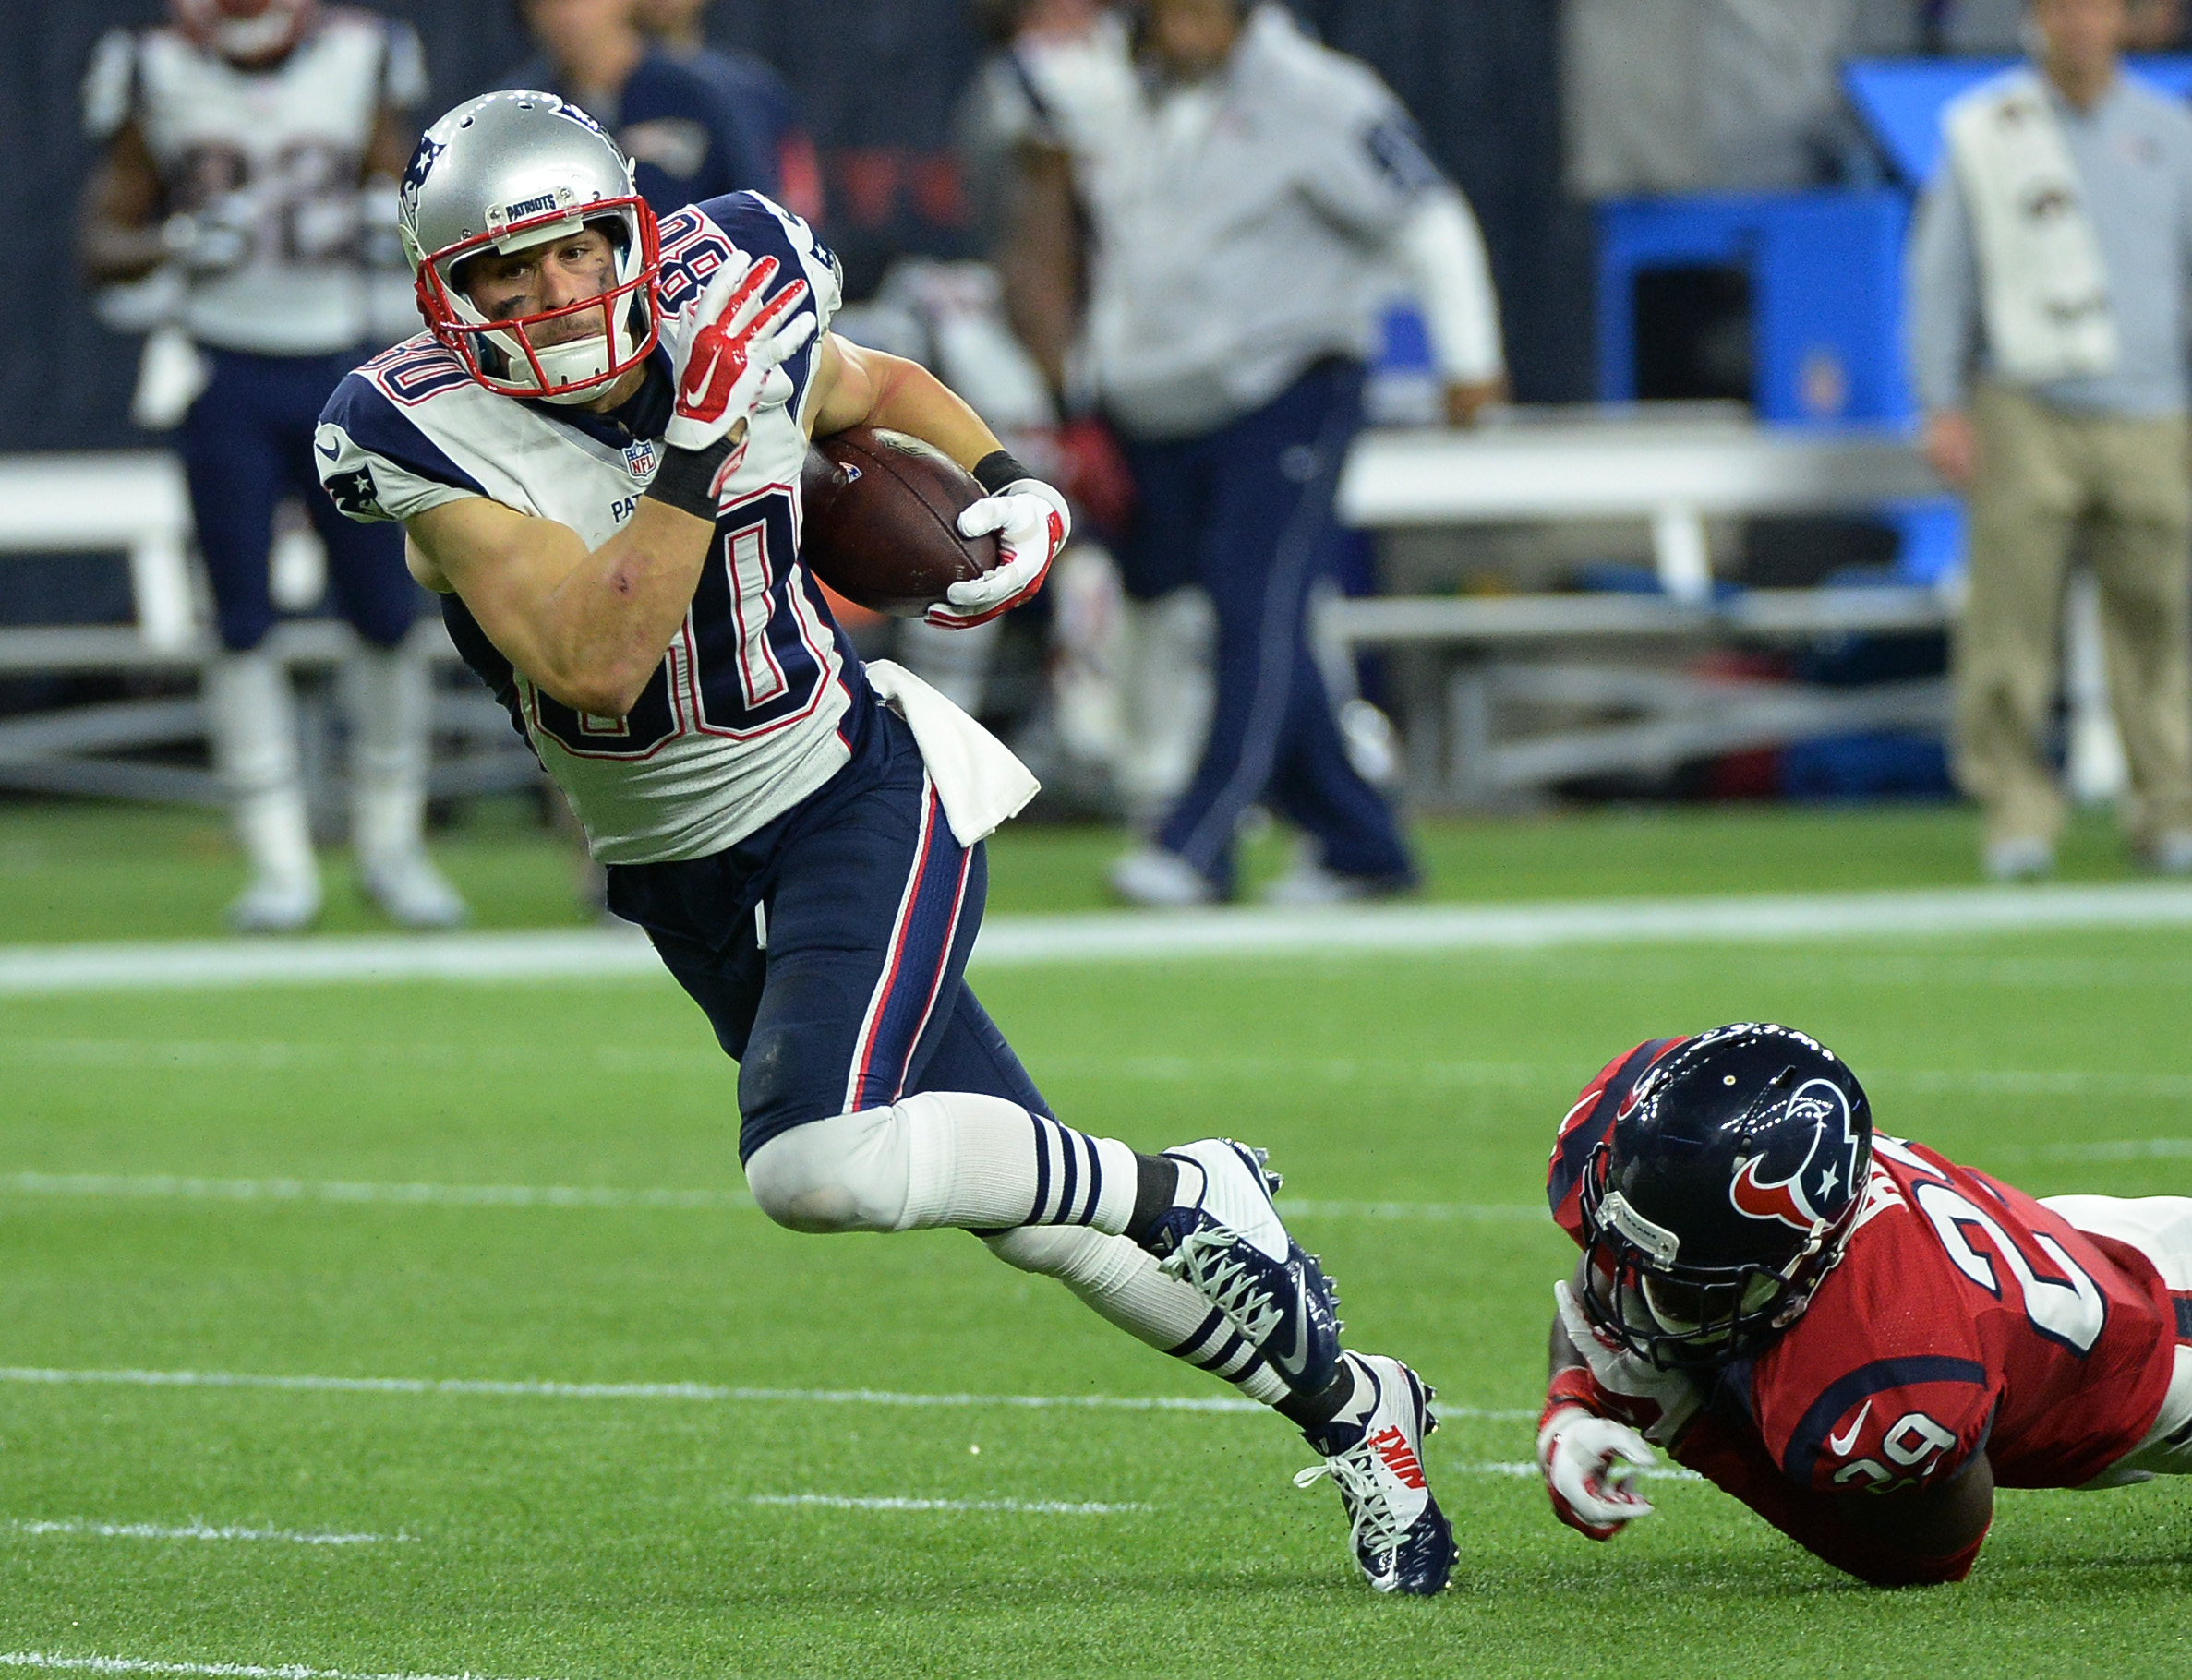 New England Patriots wide receiver Danny Amendola (80) escapes the grasp of Houston Texans strong safety Andre Hal (29) after making a catch during the first half of an NFL football game Sunday,  Dec. 13, 2015, in Houston. (AP Photo/George Bridges)